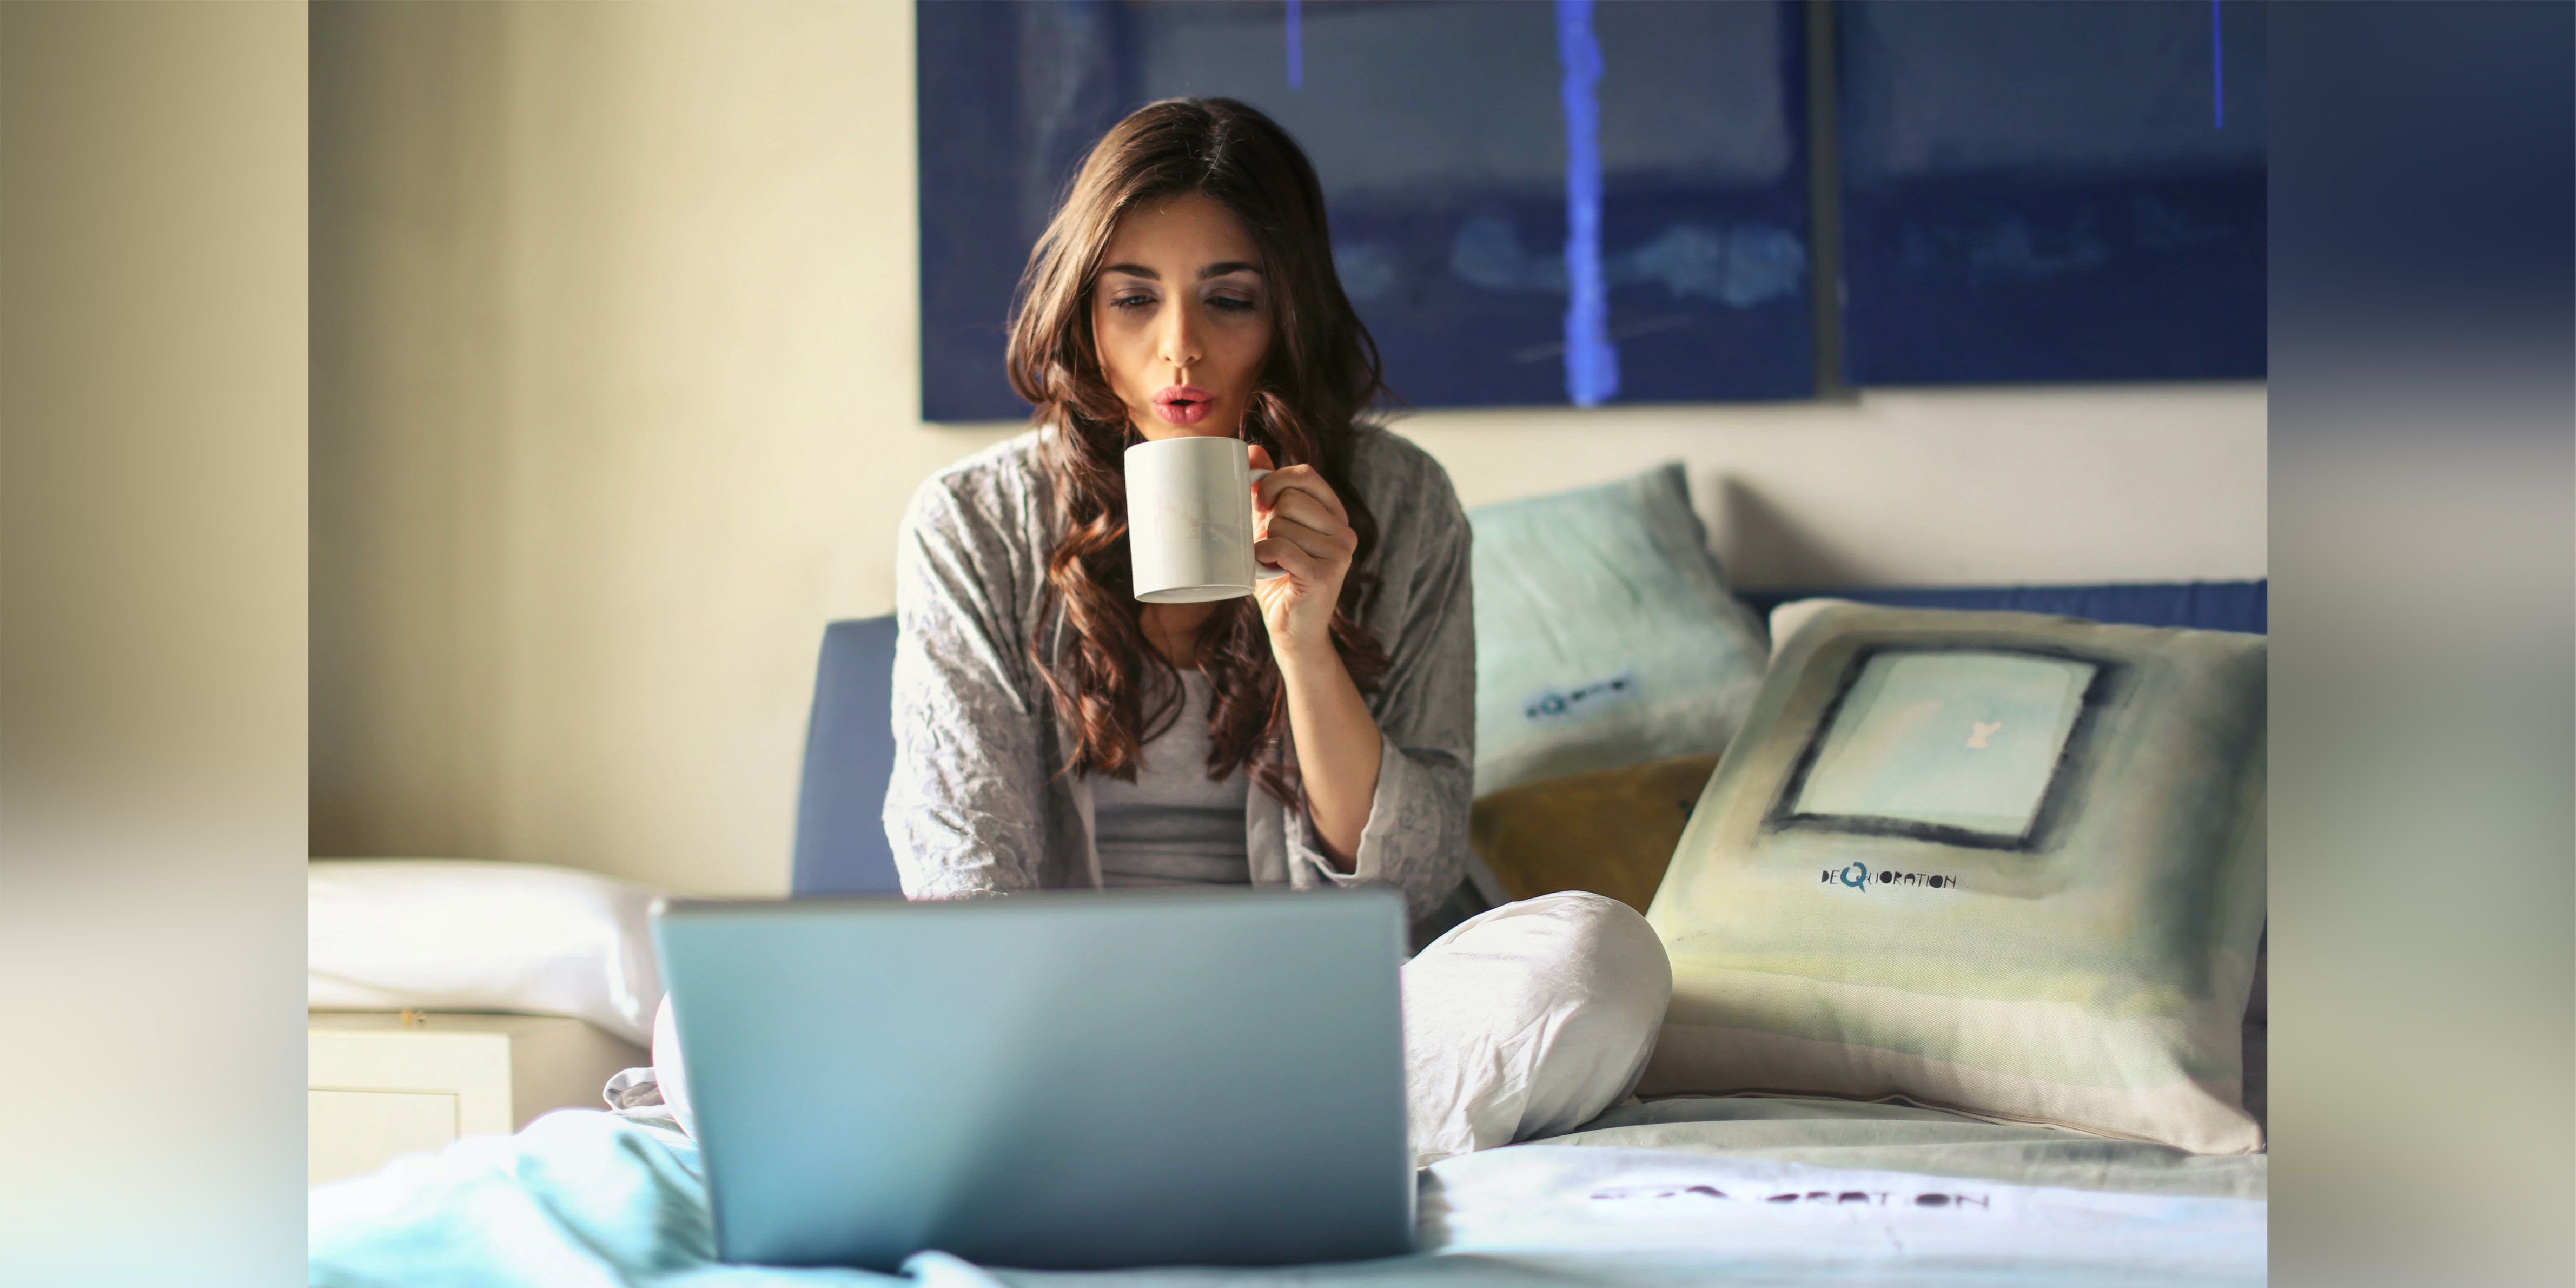 Remote working: Managing cybersecurity risks in 9 steps